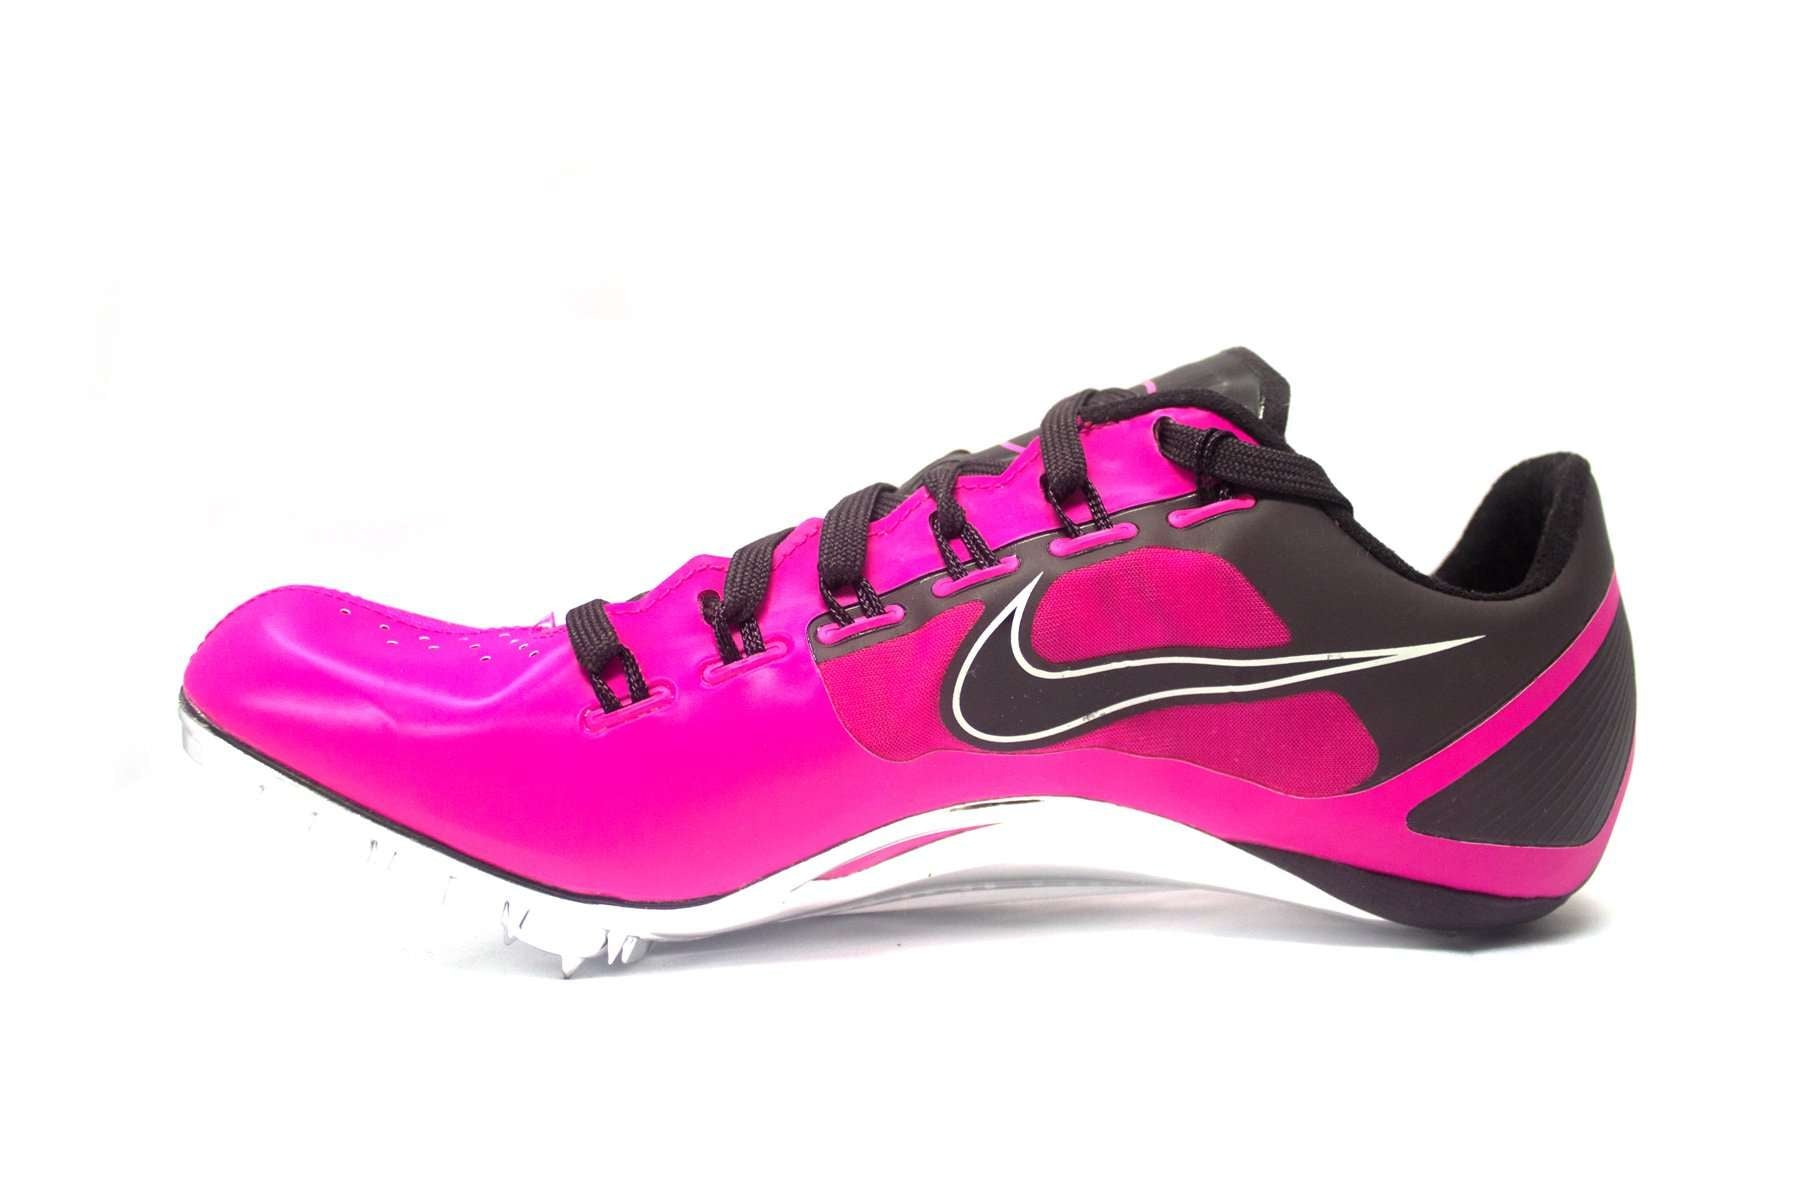 Nike Superfly R4 Unisex Track and Field Spikes